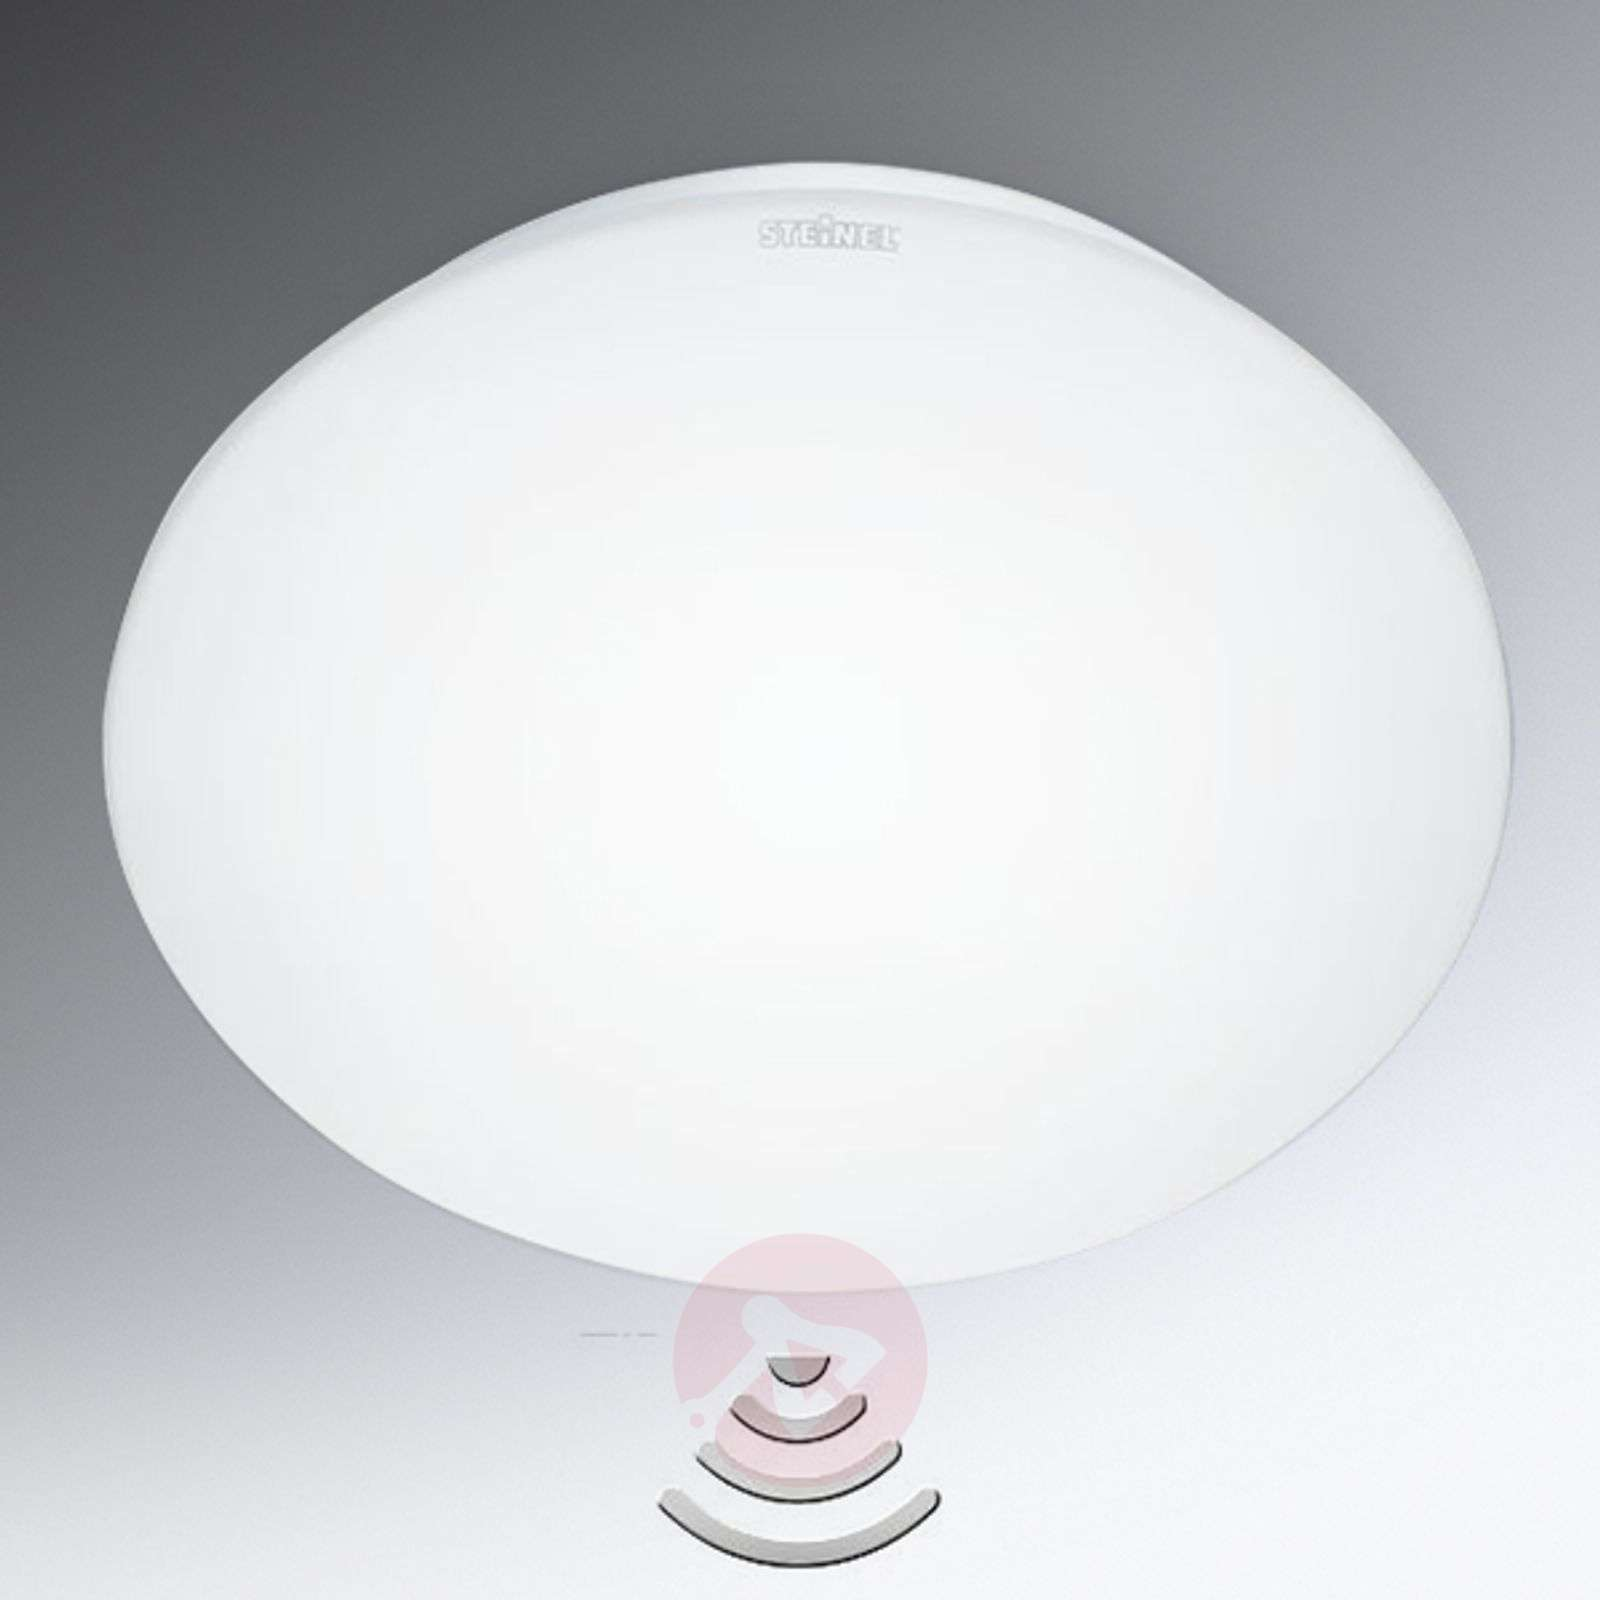 Plafoniere Con Sensore Di Movimento : Acquista plafoniera rotonda led rs 16 con sensore lampade.it